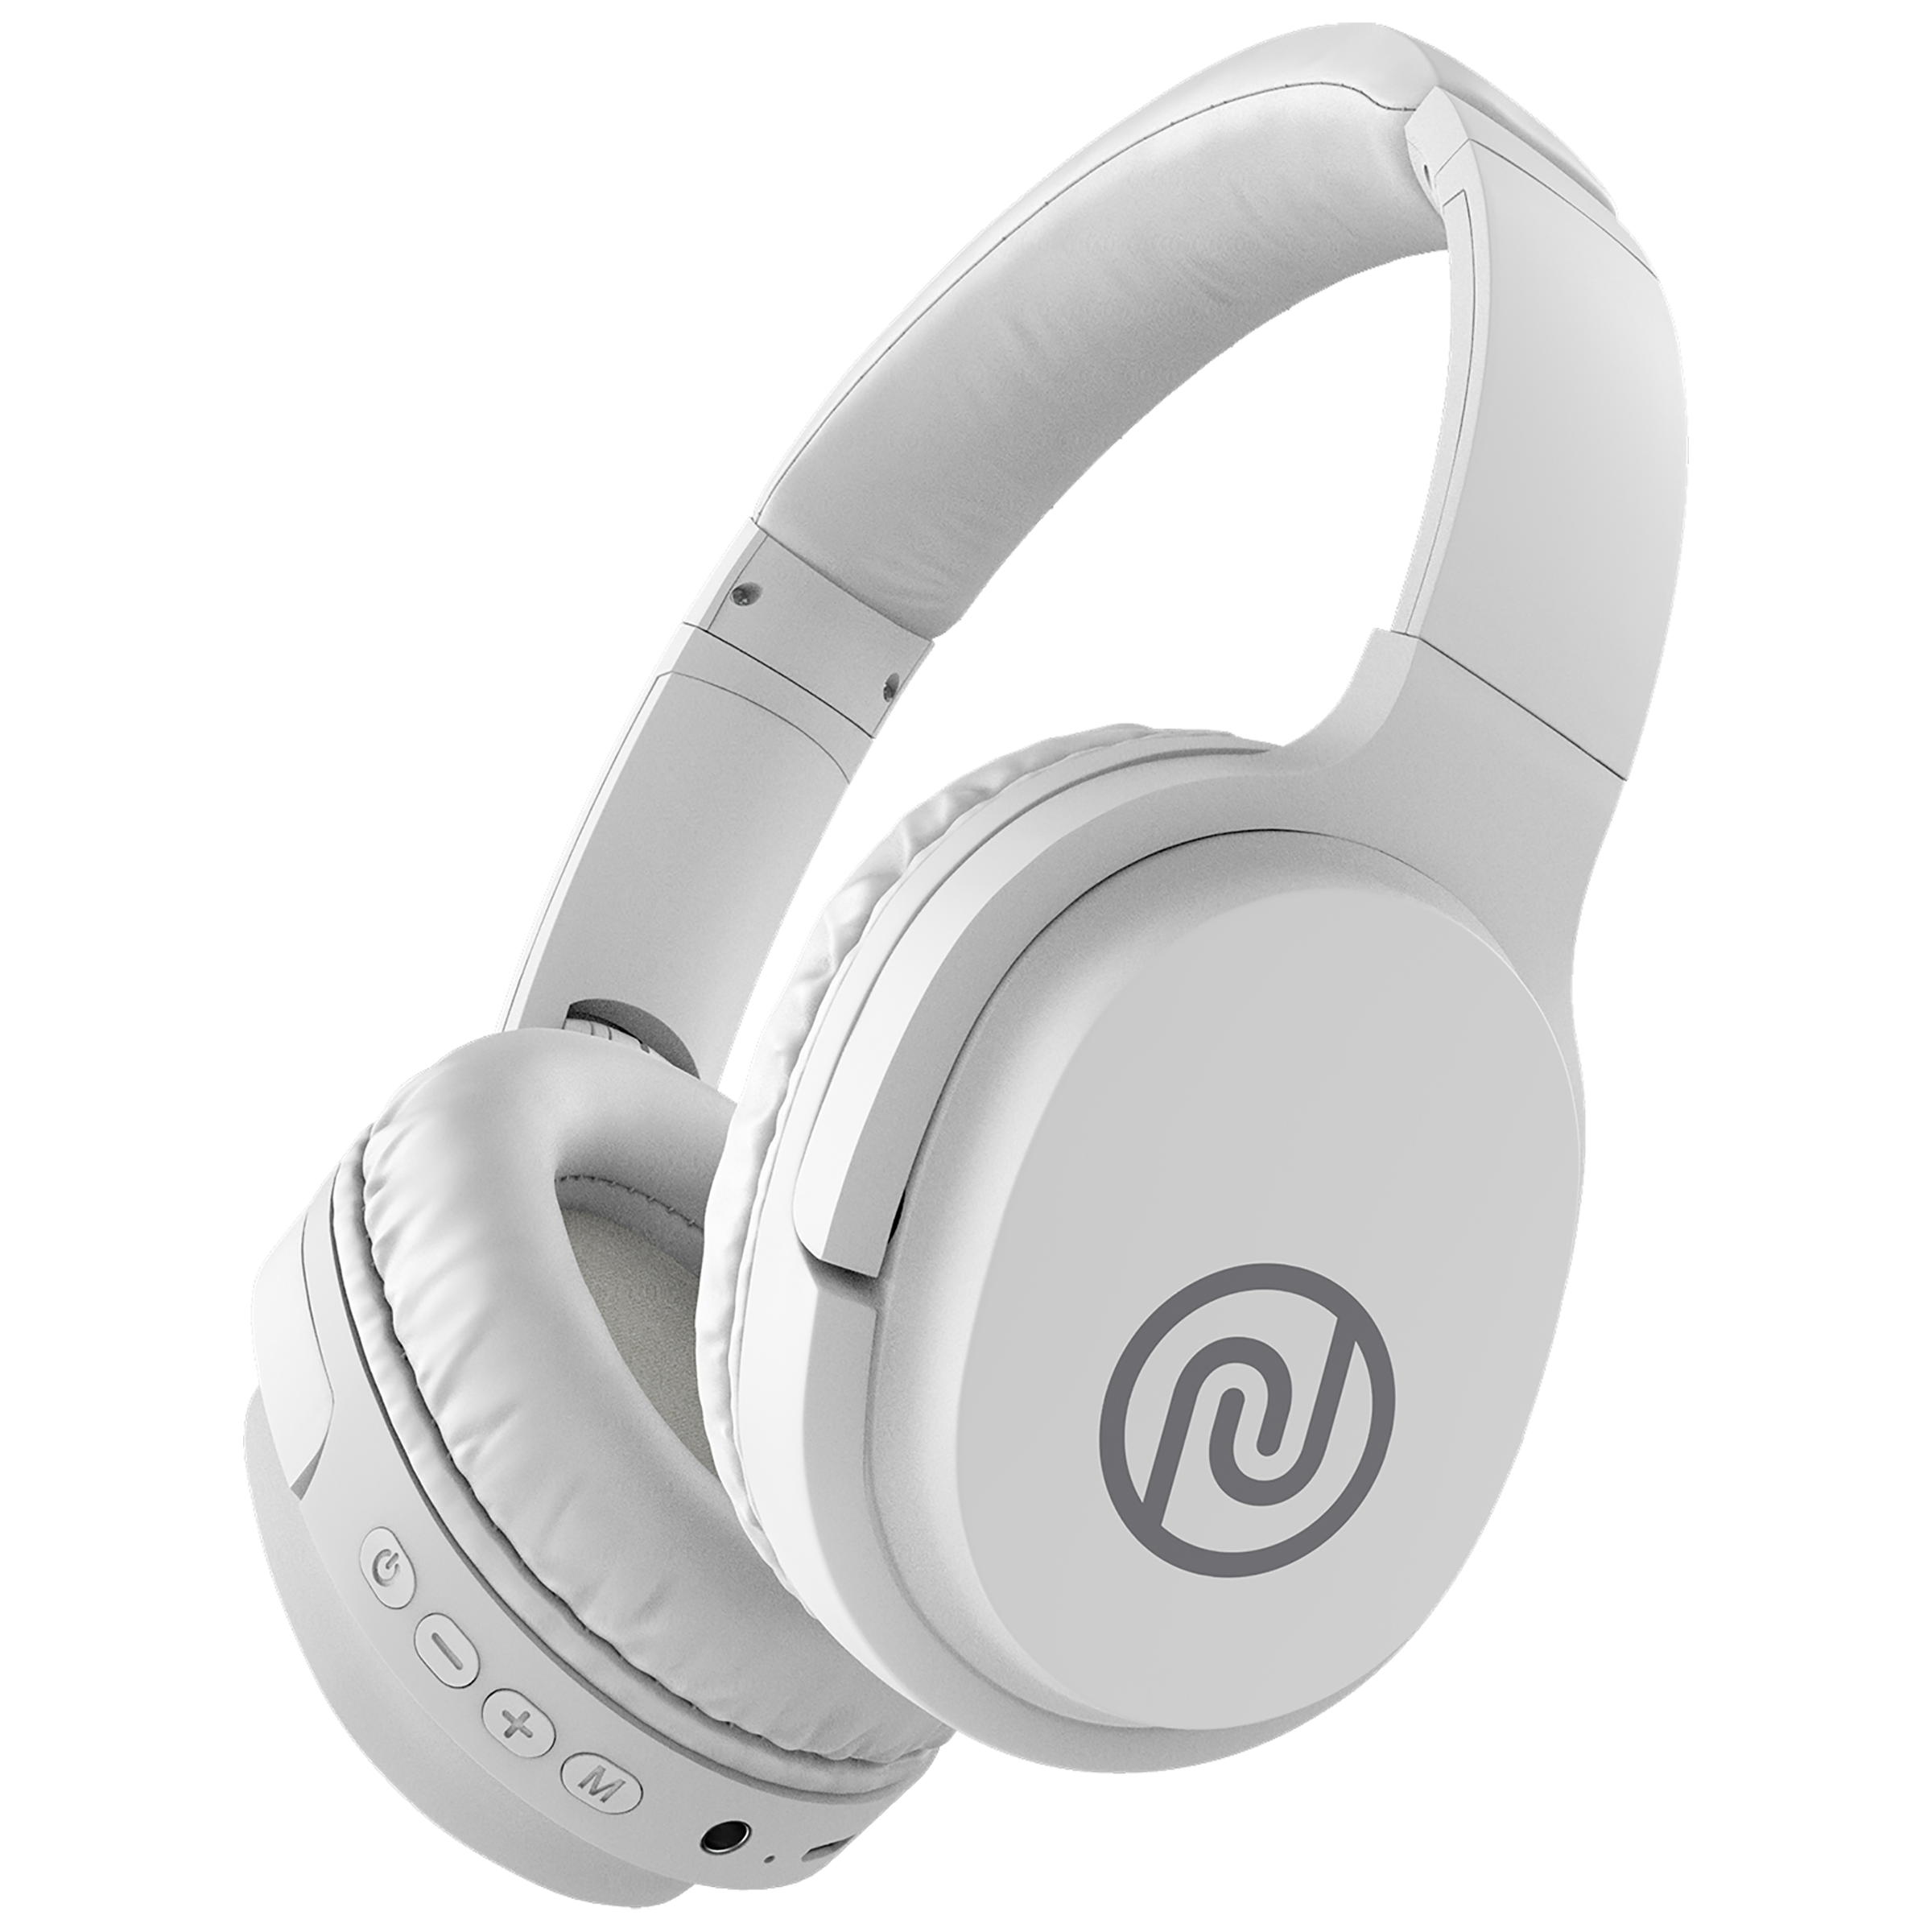 Noise One On-Ear Noise Isolation Wireless Headphone with Mic (Bluetooth 5.0, Tru BassTM Technology, White)_1